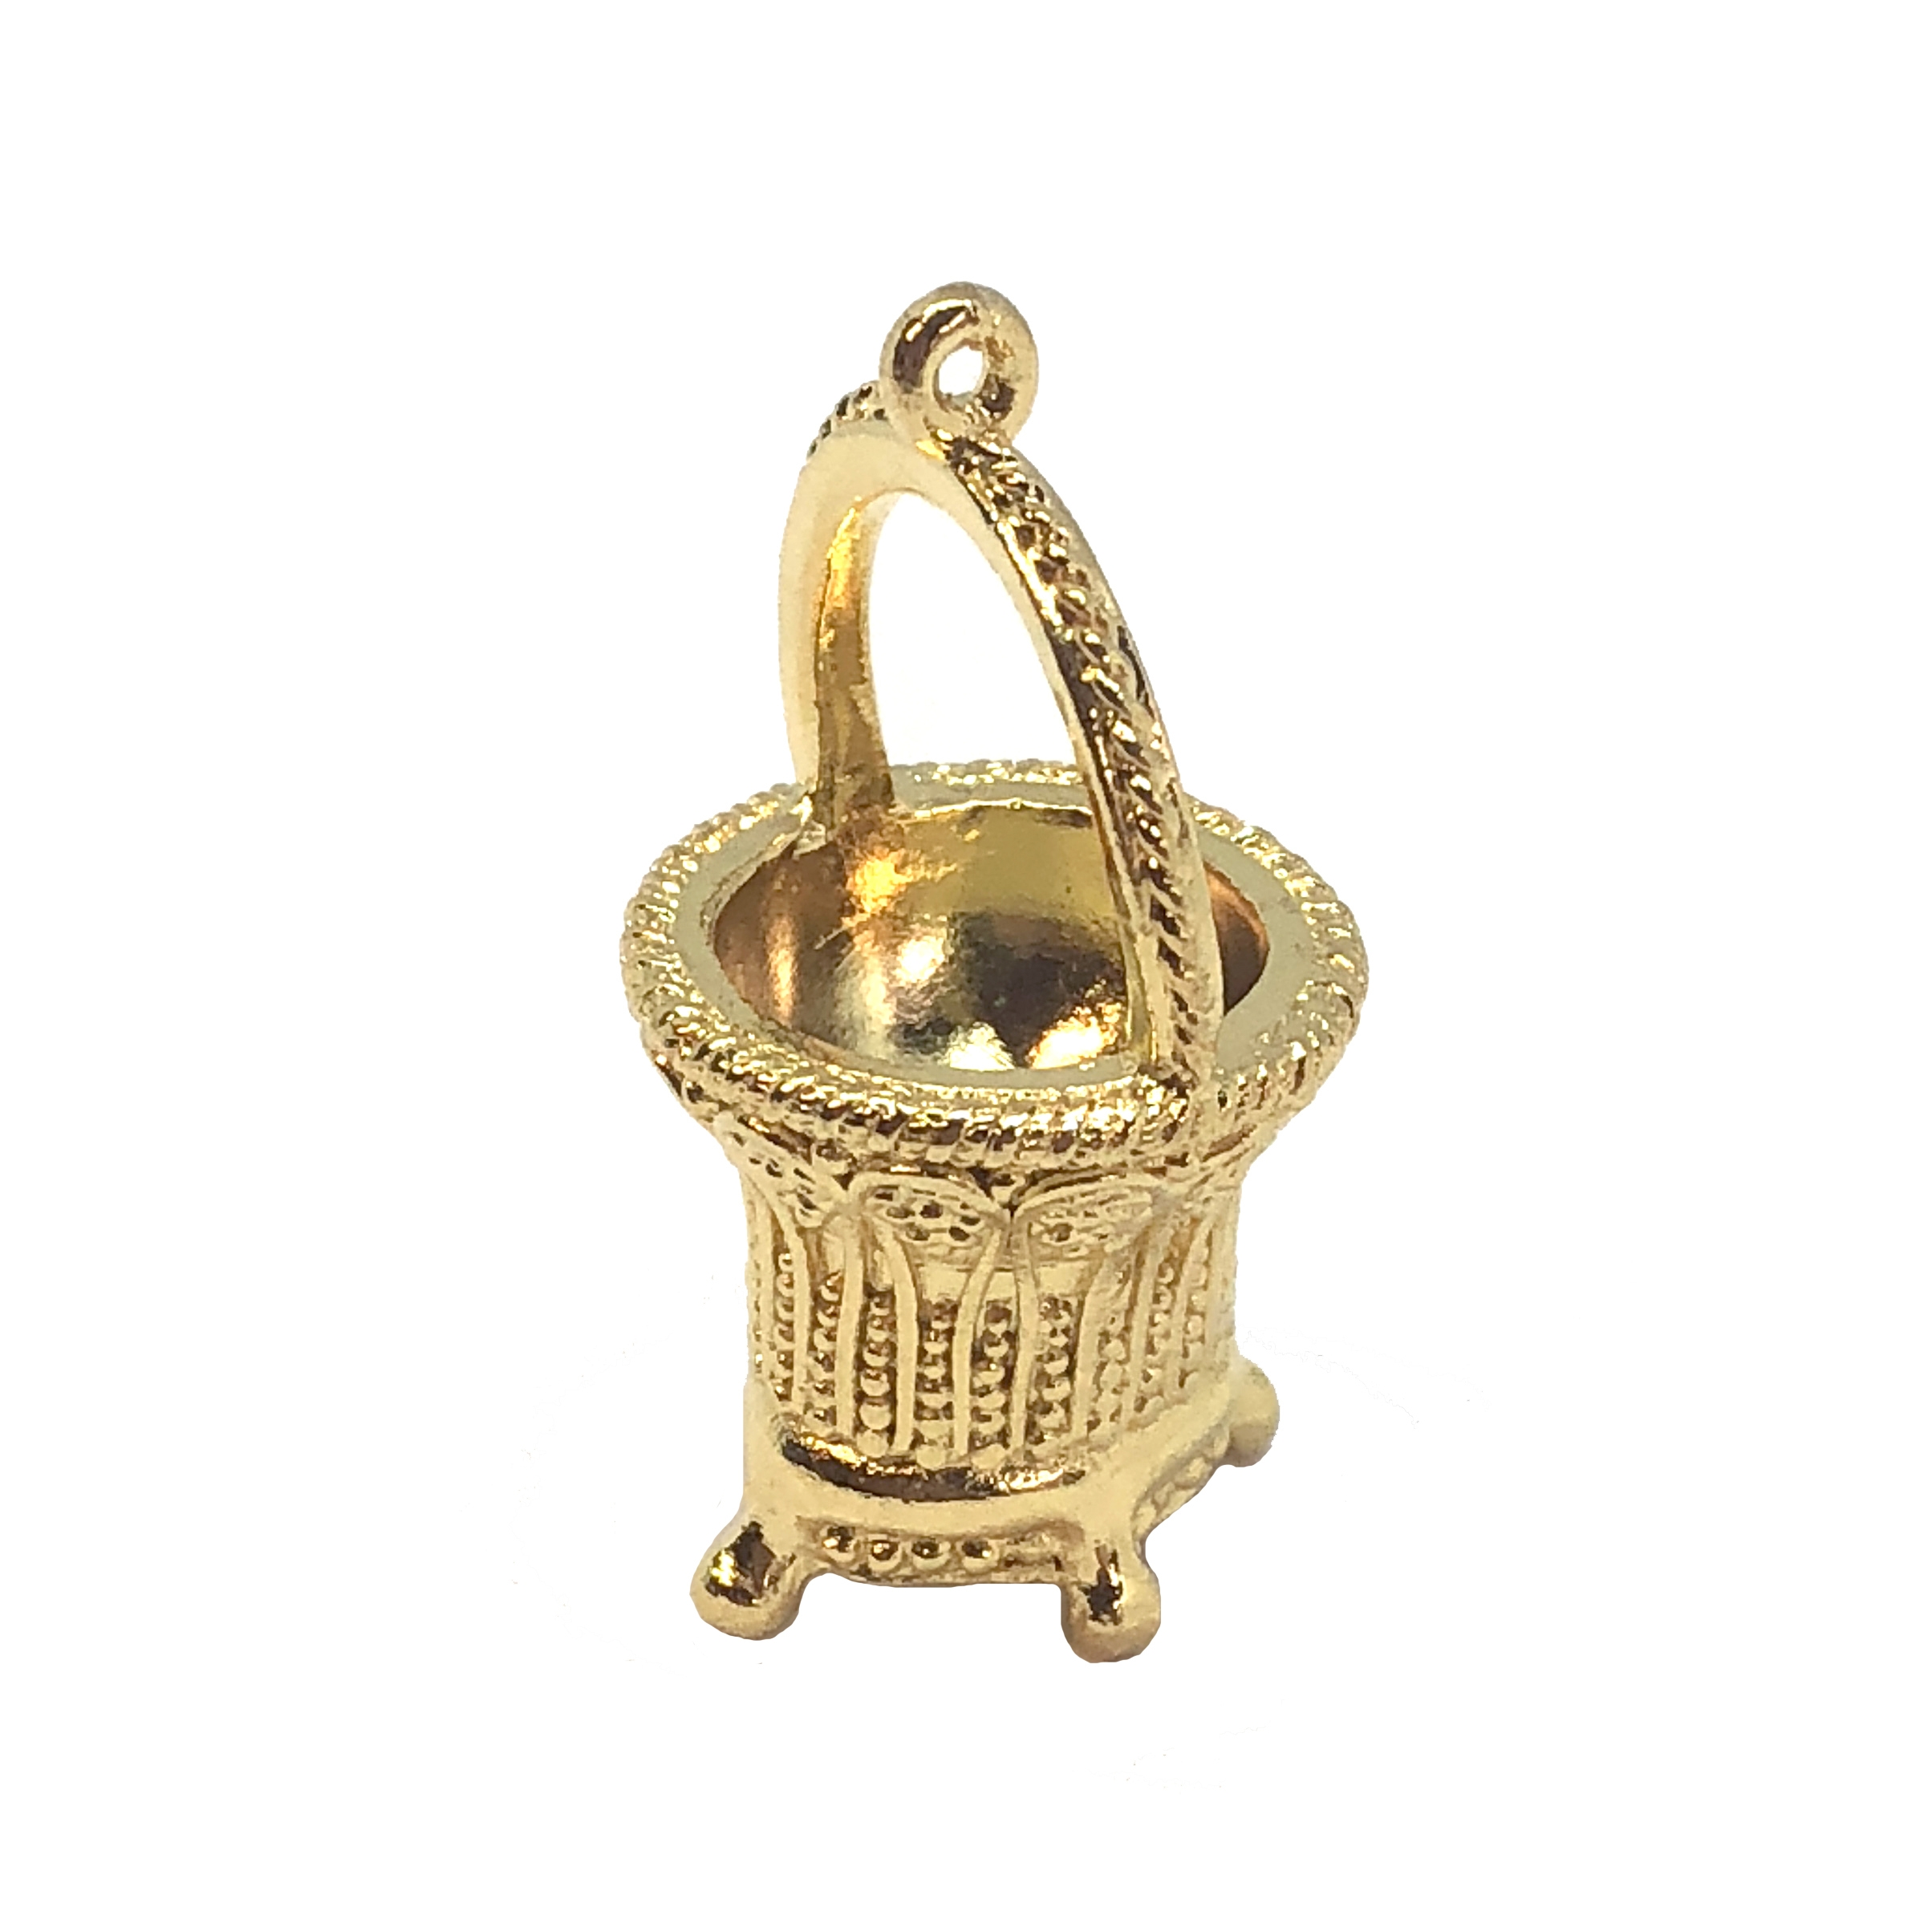 vintage basket pendant, 22K gold finish pewter, B'sue by 1928, jewelry pendant, pendant, basket, jewelry basket, Victorian style, gold, lead free pewter, gold finish, US made, designer jewelry, vintage supplies, mount, B'sue Boutiques, 38x21mm, 08539